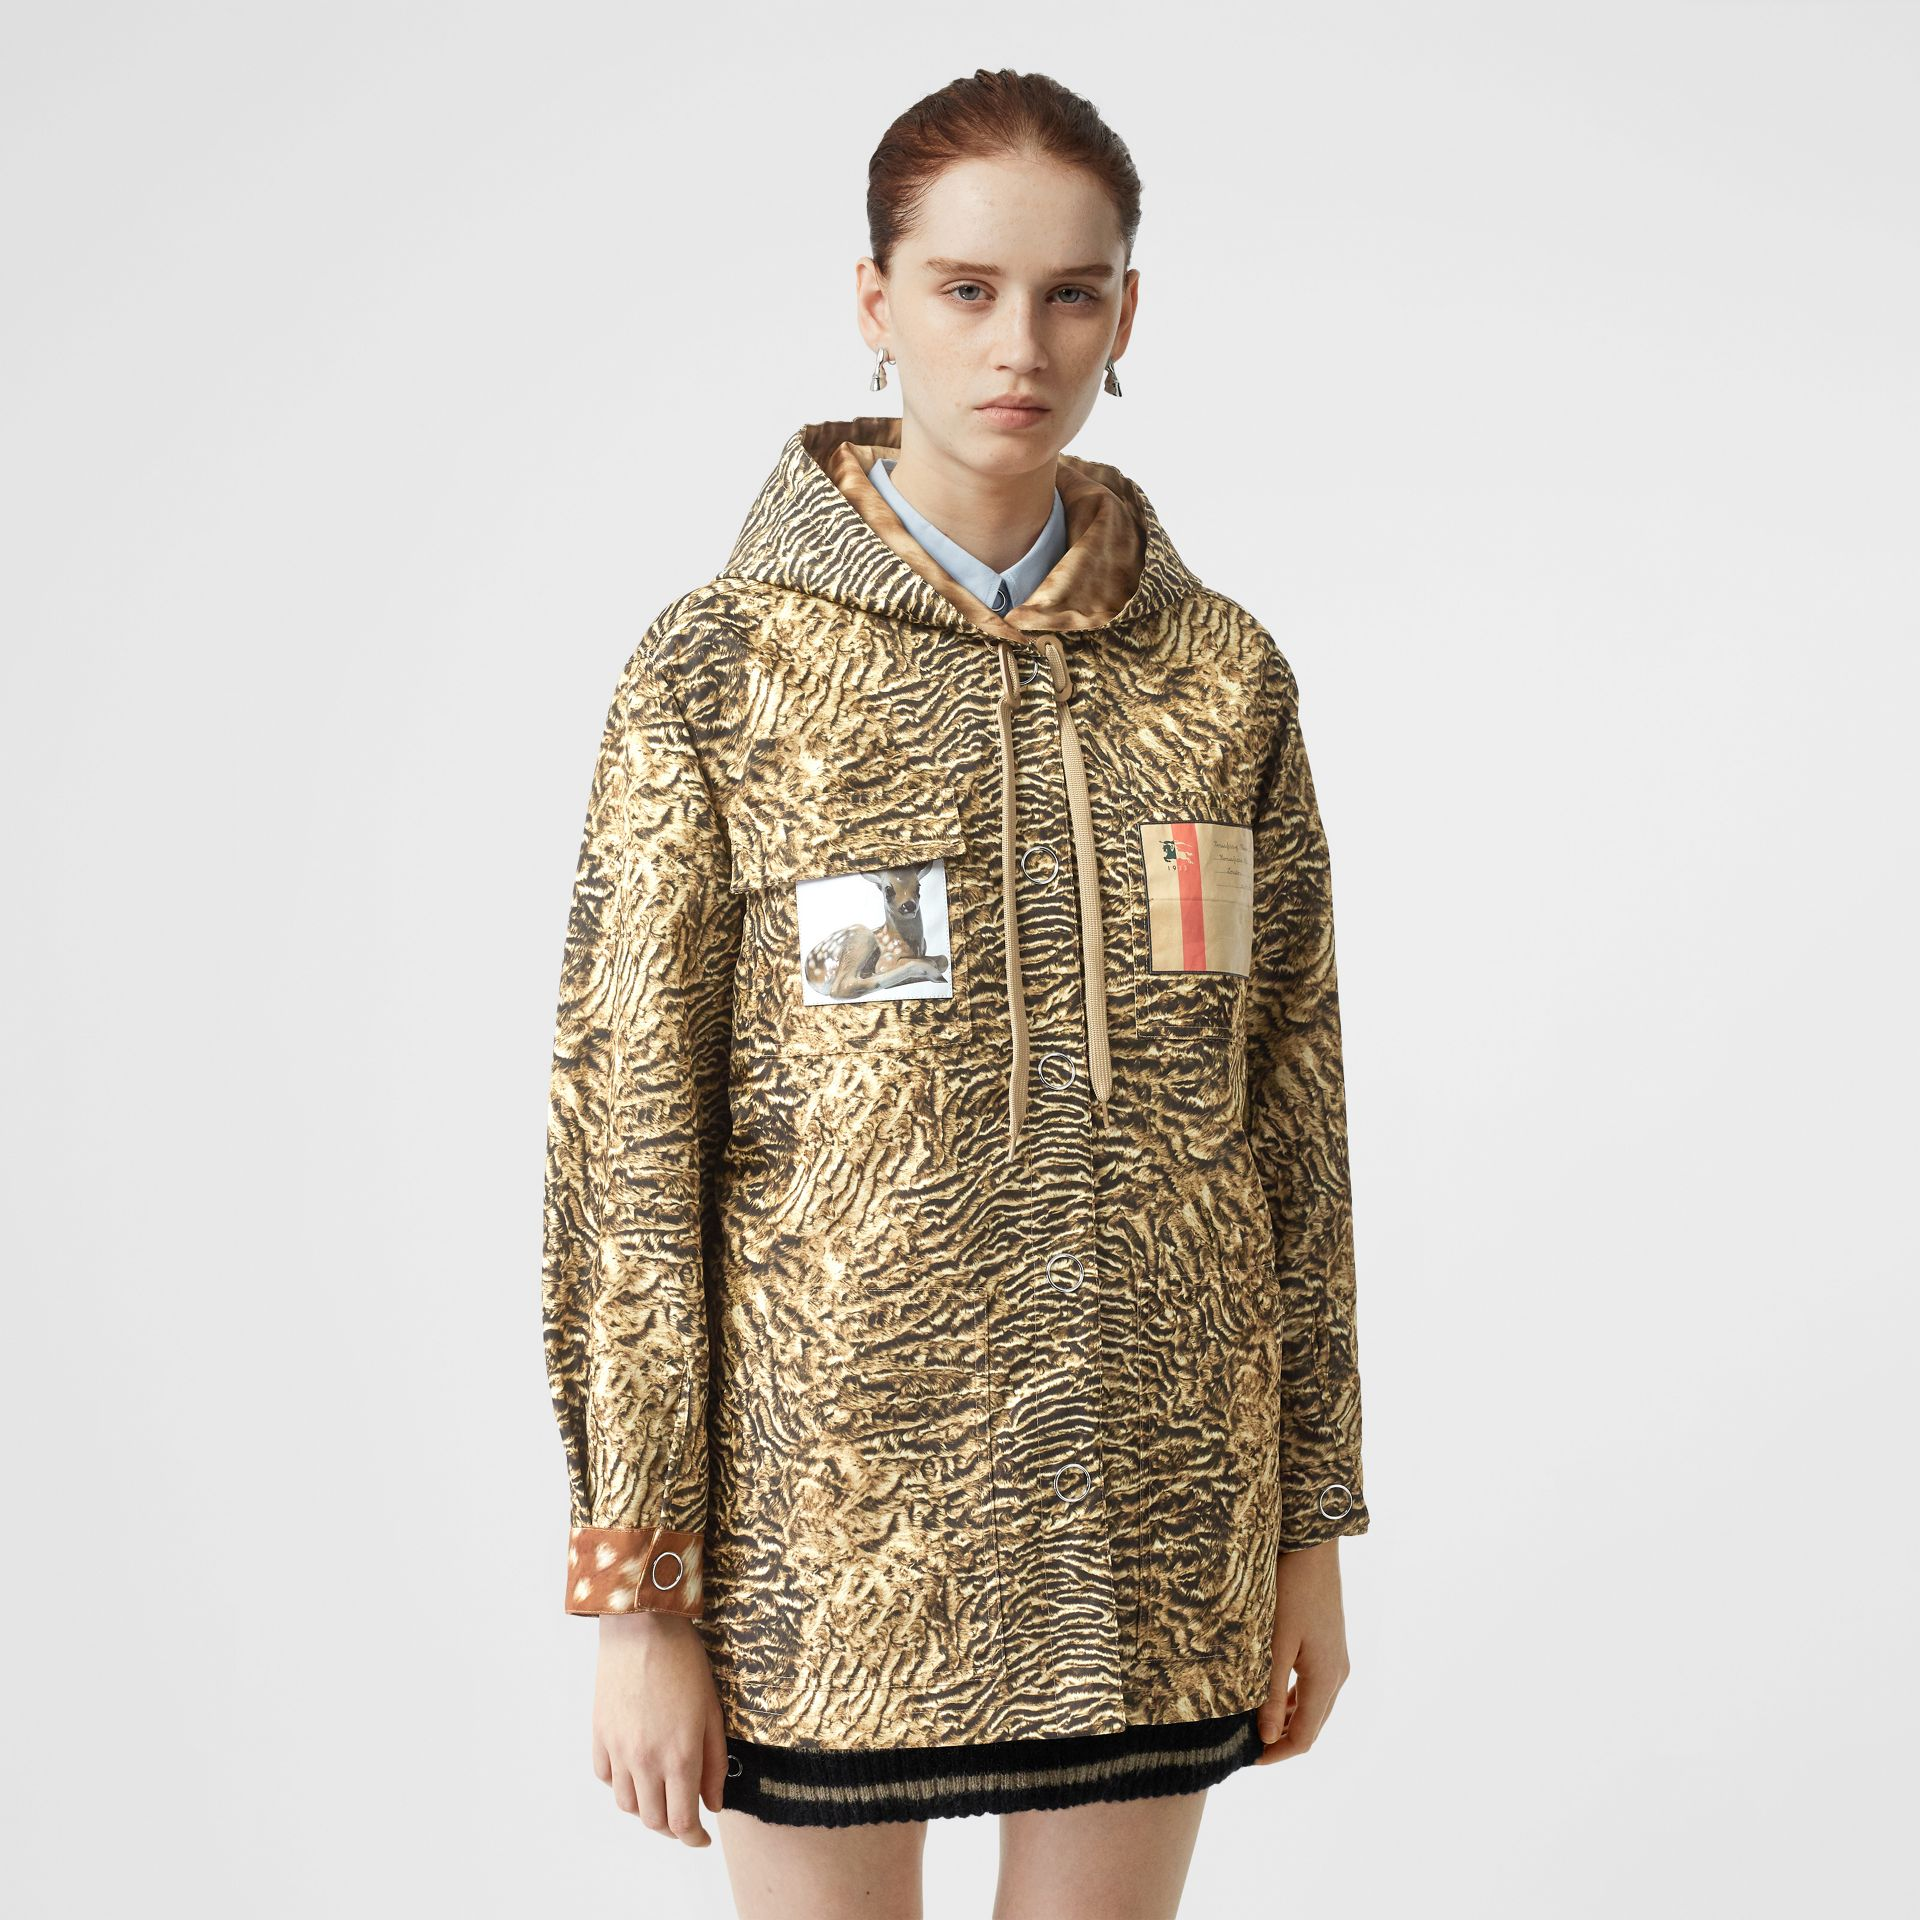 Tiger Print Lightweight Hooded Jacket in Beige - Women | Burberry United Kingdom - gallery image 5